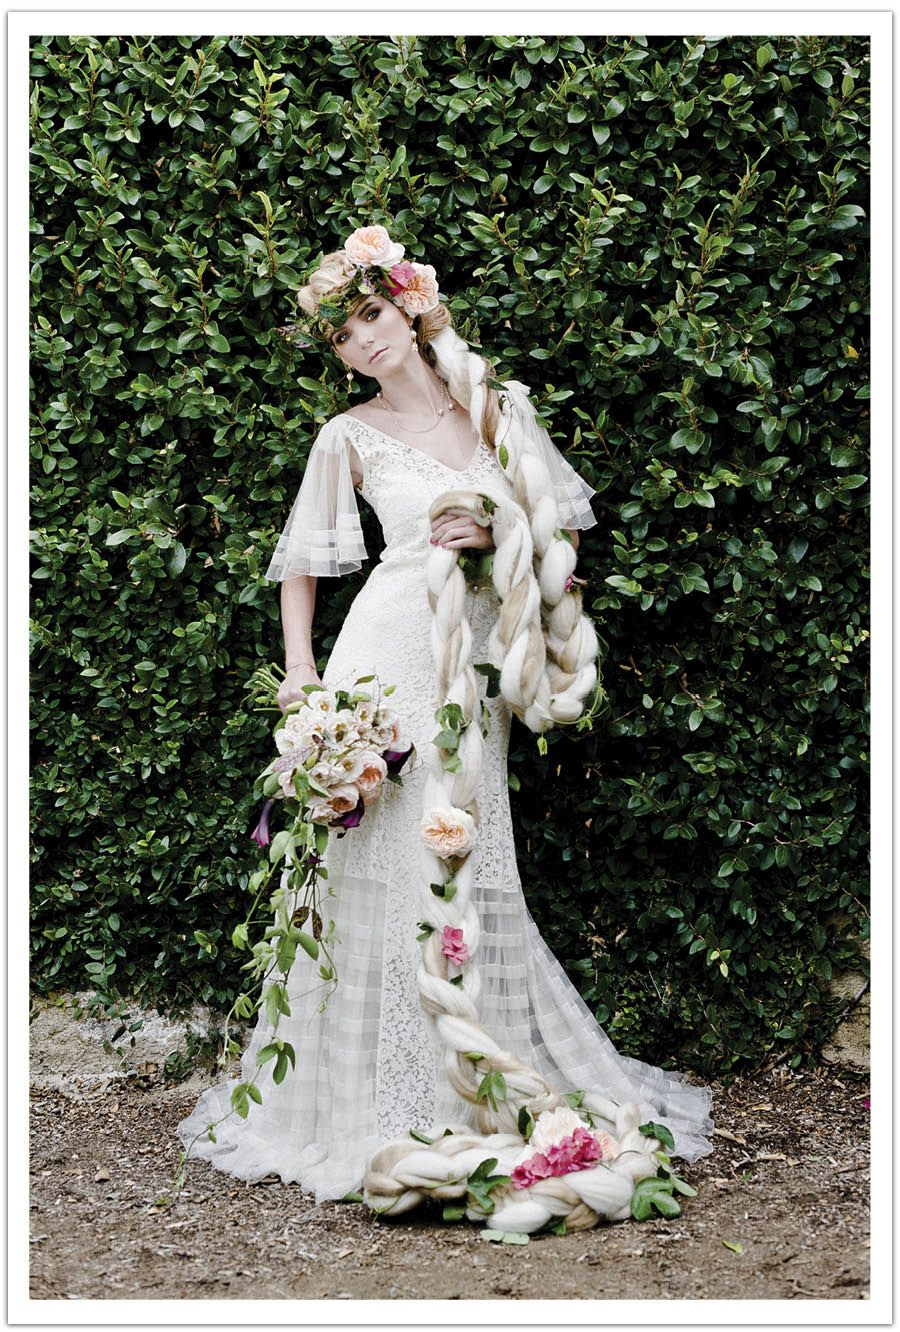 Alchemy fine events fairy tale wedding dress utterly engaged shoot once upon a bride fairy tale wedding inspiration shoot for utterly engaged alchemy fine events invitations monicamarmolfo Gallery